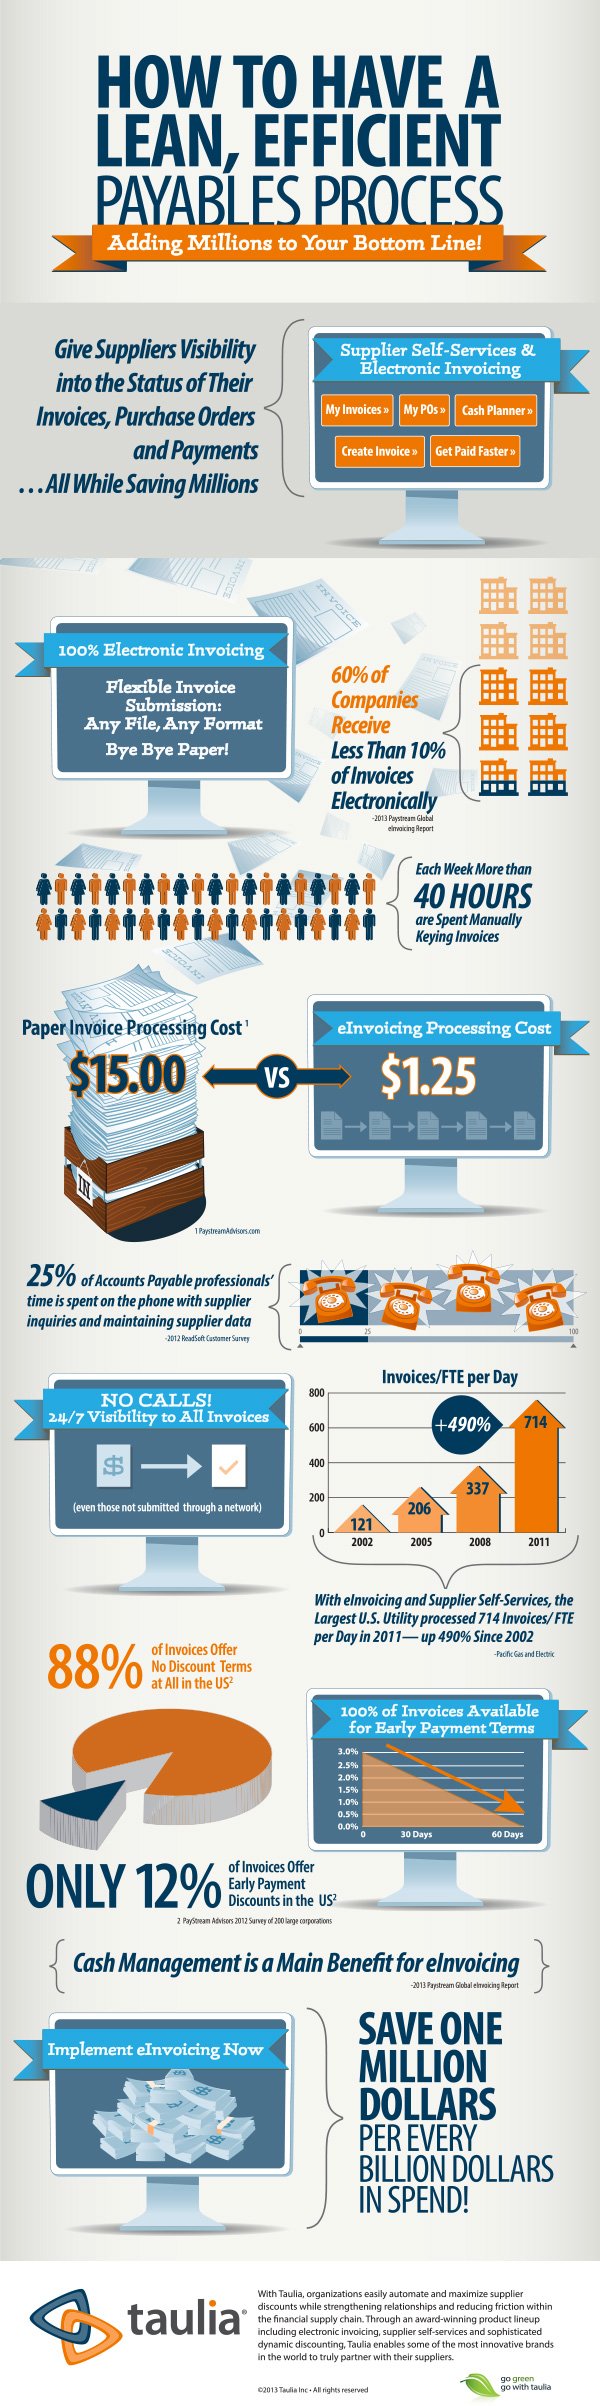 Payables and Processing Invoices